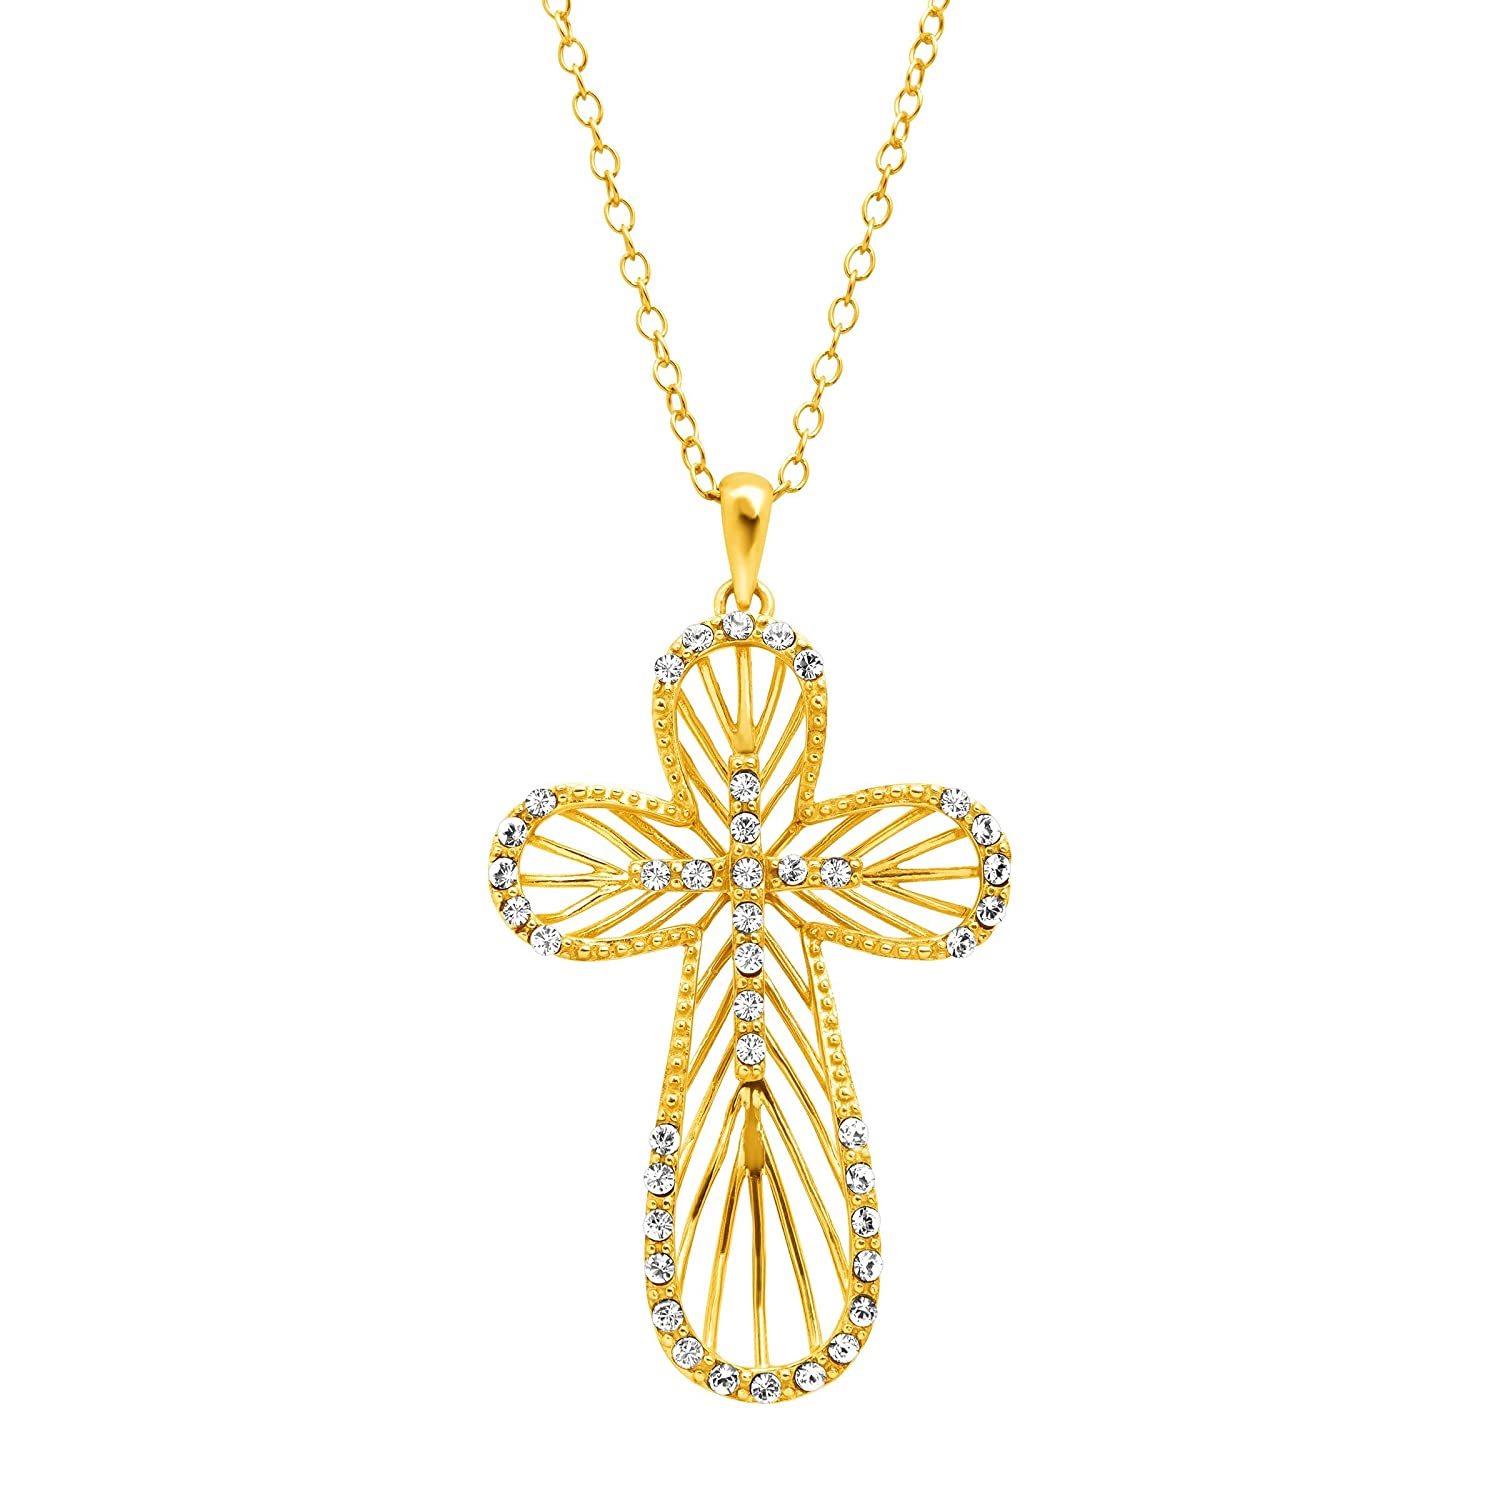 Crystaluxe Concave Cross Pendant Necklace with Swarovski Crystals in 18K Gold-Plated Sterling Silver